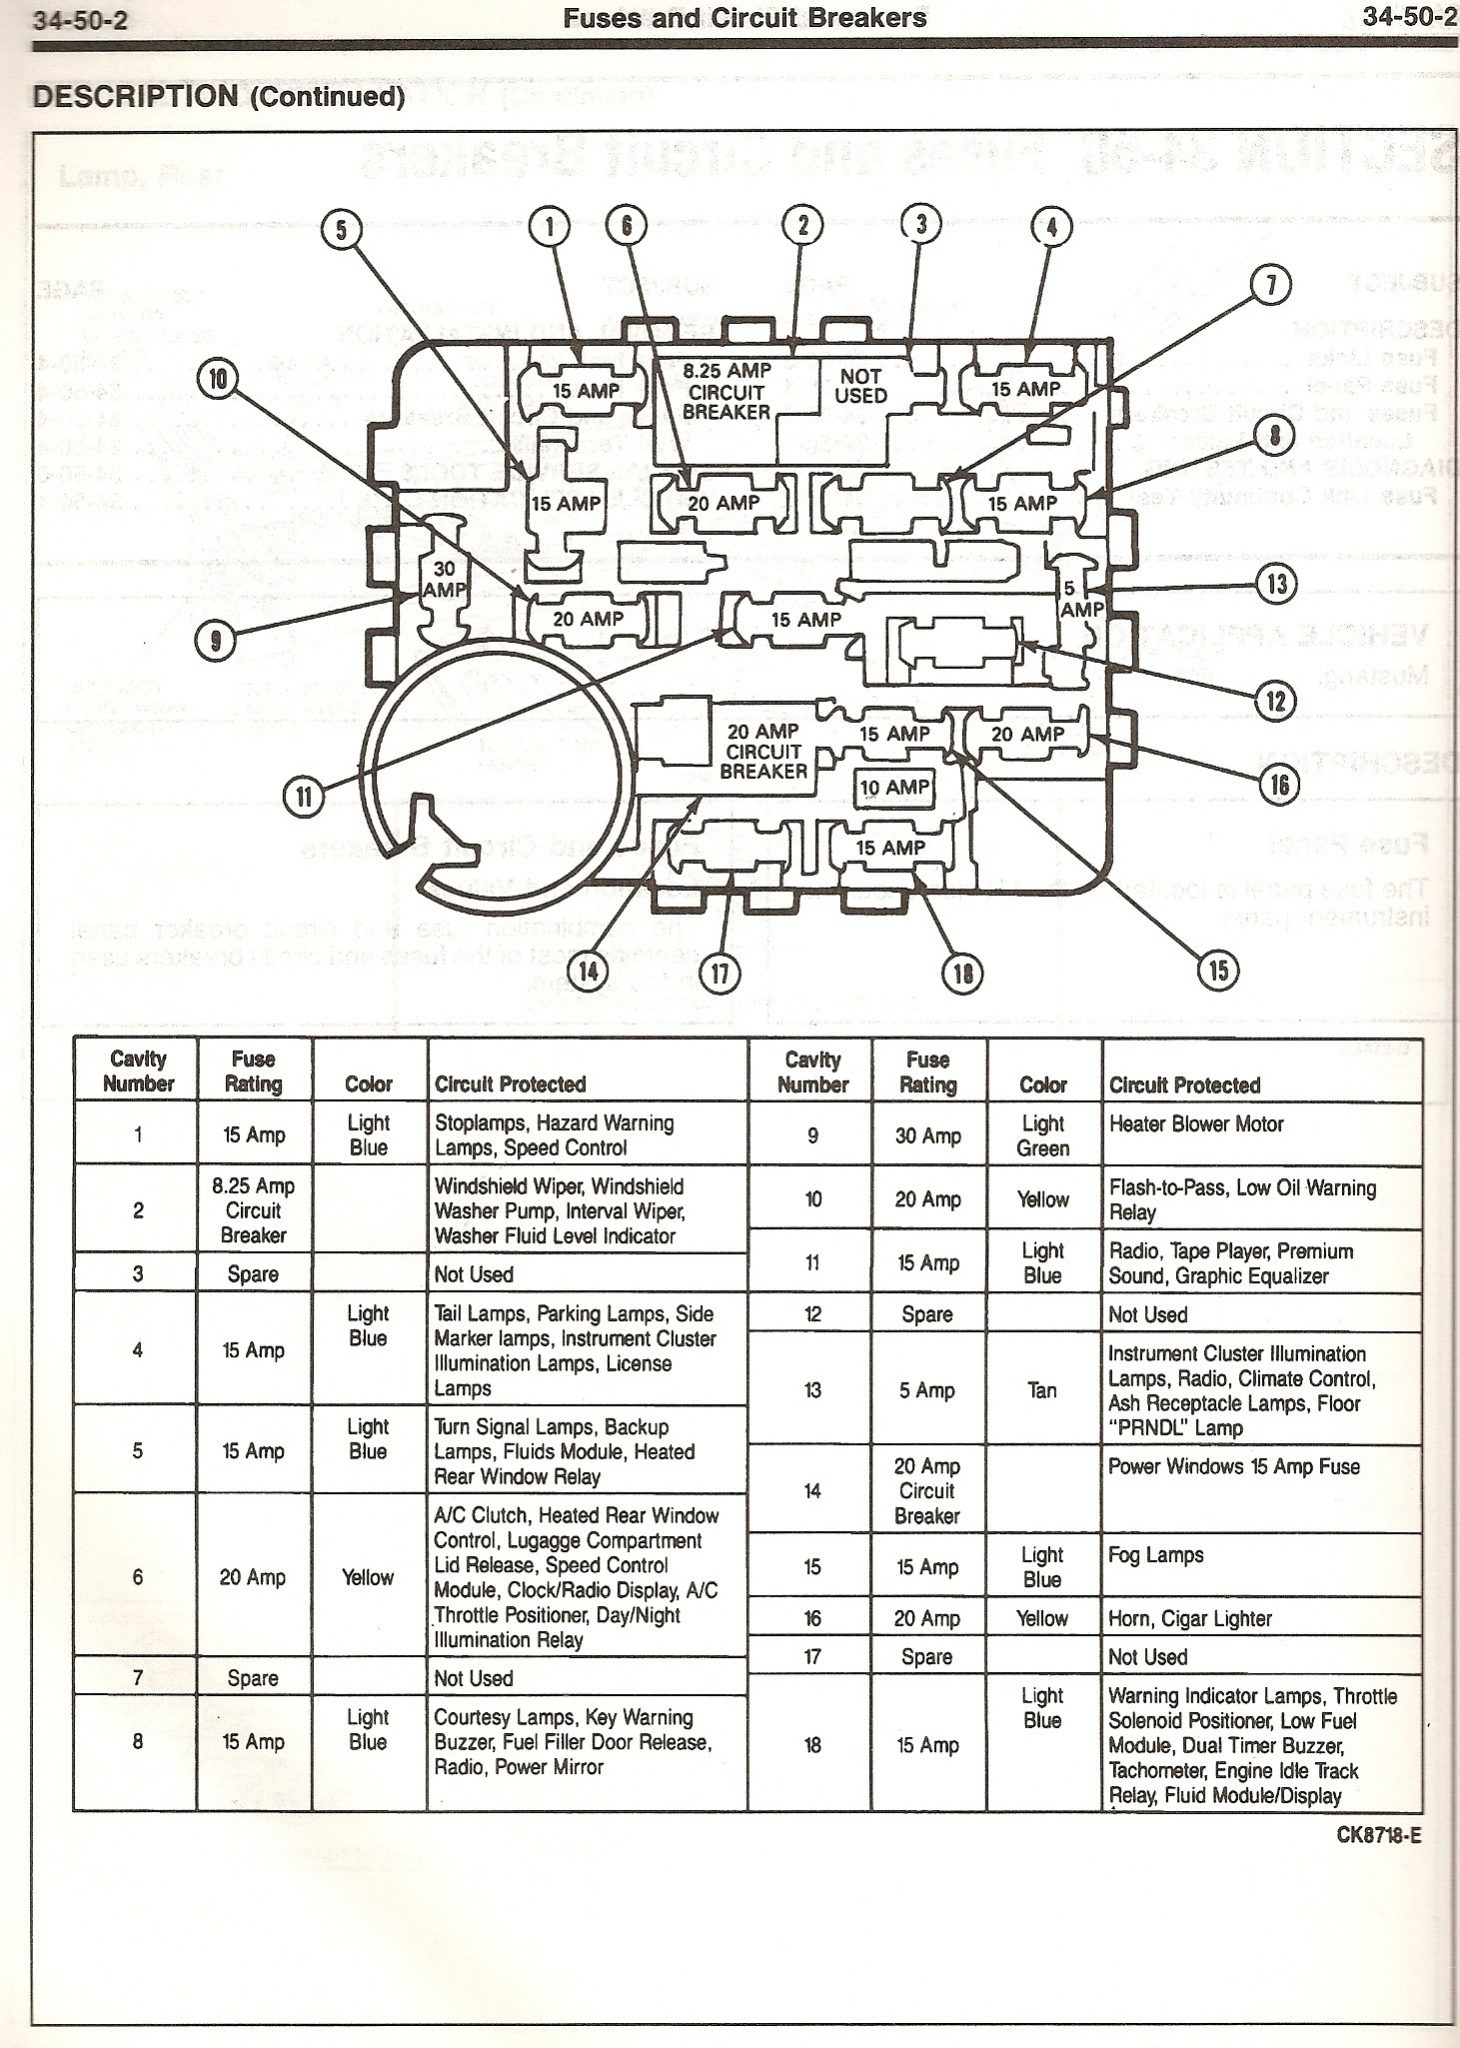 hight resolution of 92 mustang fuse box diagram wiring diagram sheet audi a4 b5 fuse box diagram 90 240sx